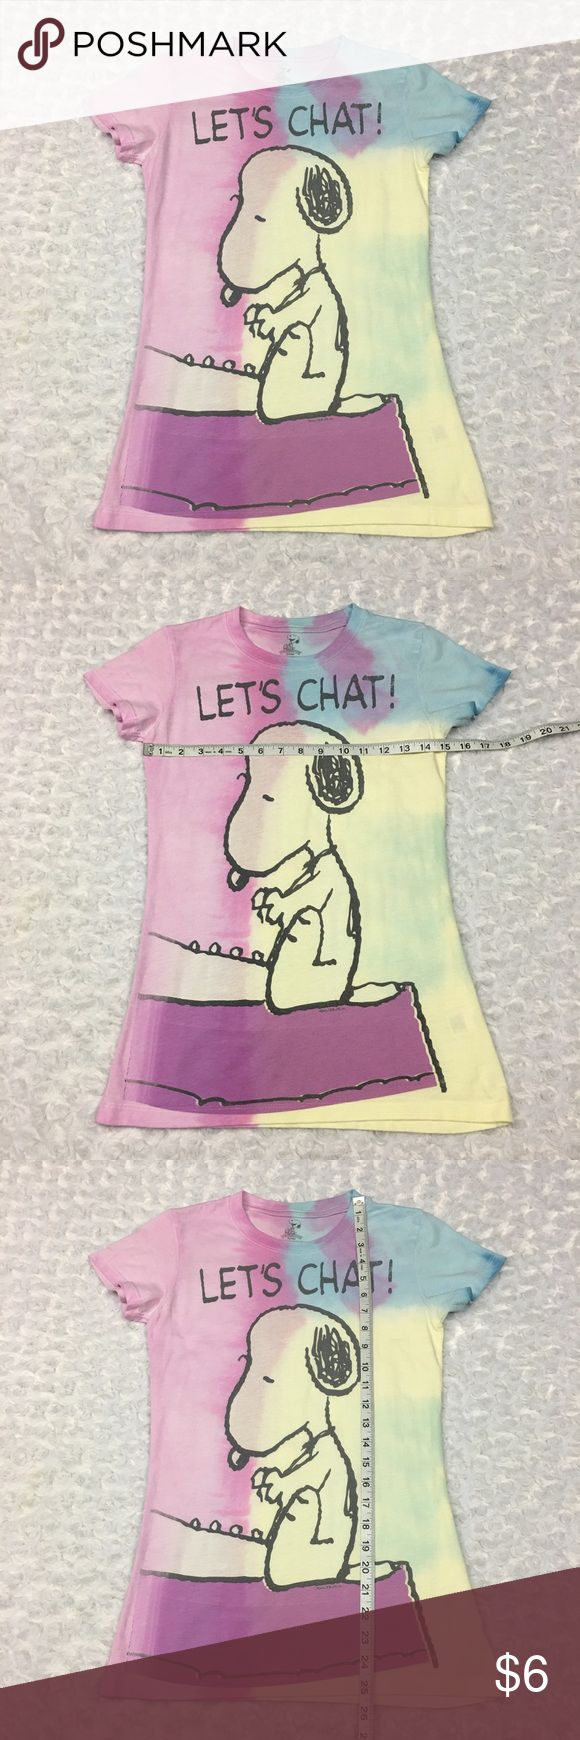 Snoopy Colorful Tyedye Juniors Tshirt Let's Chat! Snoopy Peanuts Colorful Tyedye Capsleeve Novelty Juniors Med Tshirt Let's Chat!  Size: Juniors Medium. SEE PHOTOS FOR MEASUREMENTS  Condition: Some normal wear from washing. SEE PHOTOS  * This listing is for ONE (1) Top *  Please note: Colors may vary slightly due to different display screen calibrations.  [A-27] Snoopy Peanuts Tops Tees - Short Sleeve